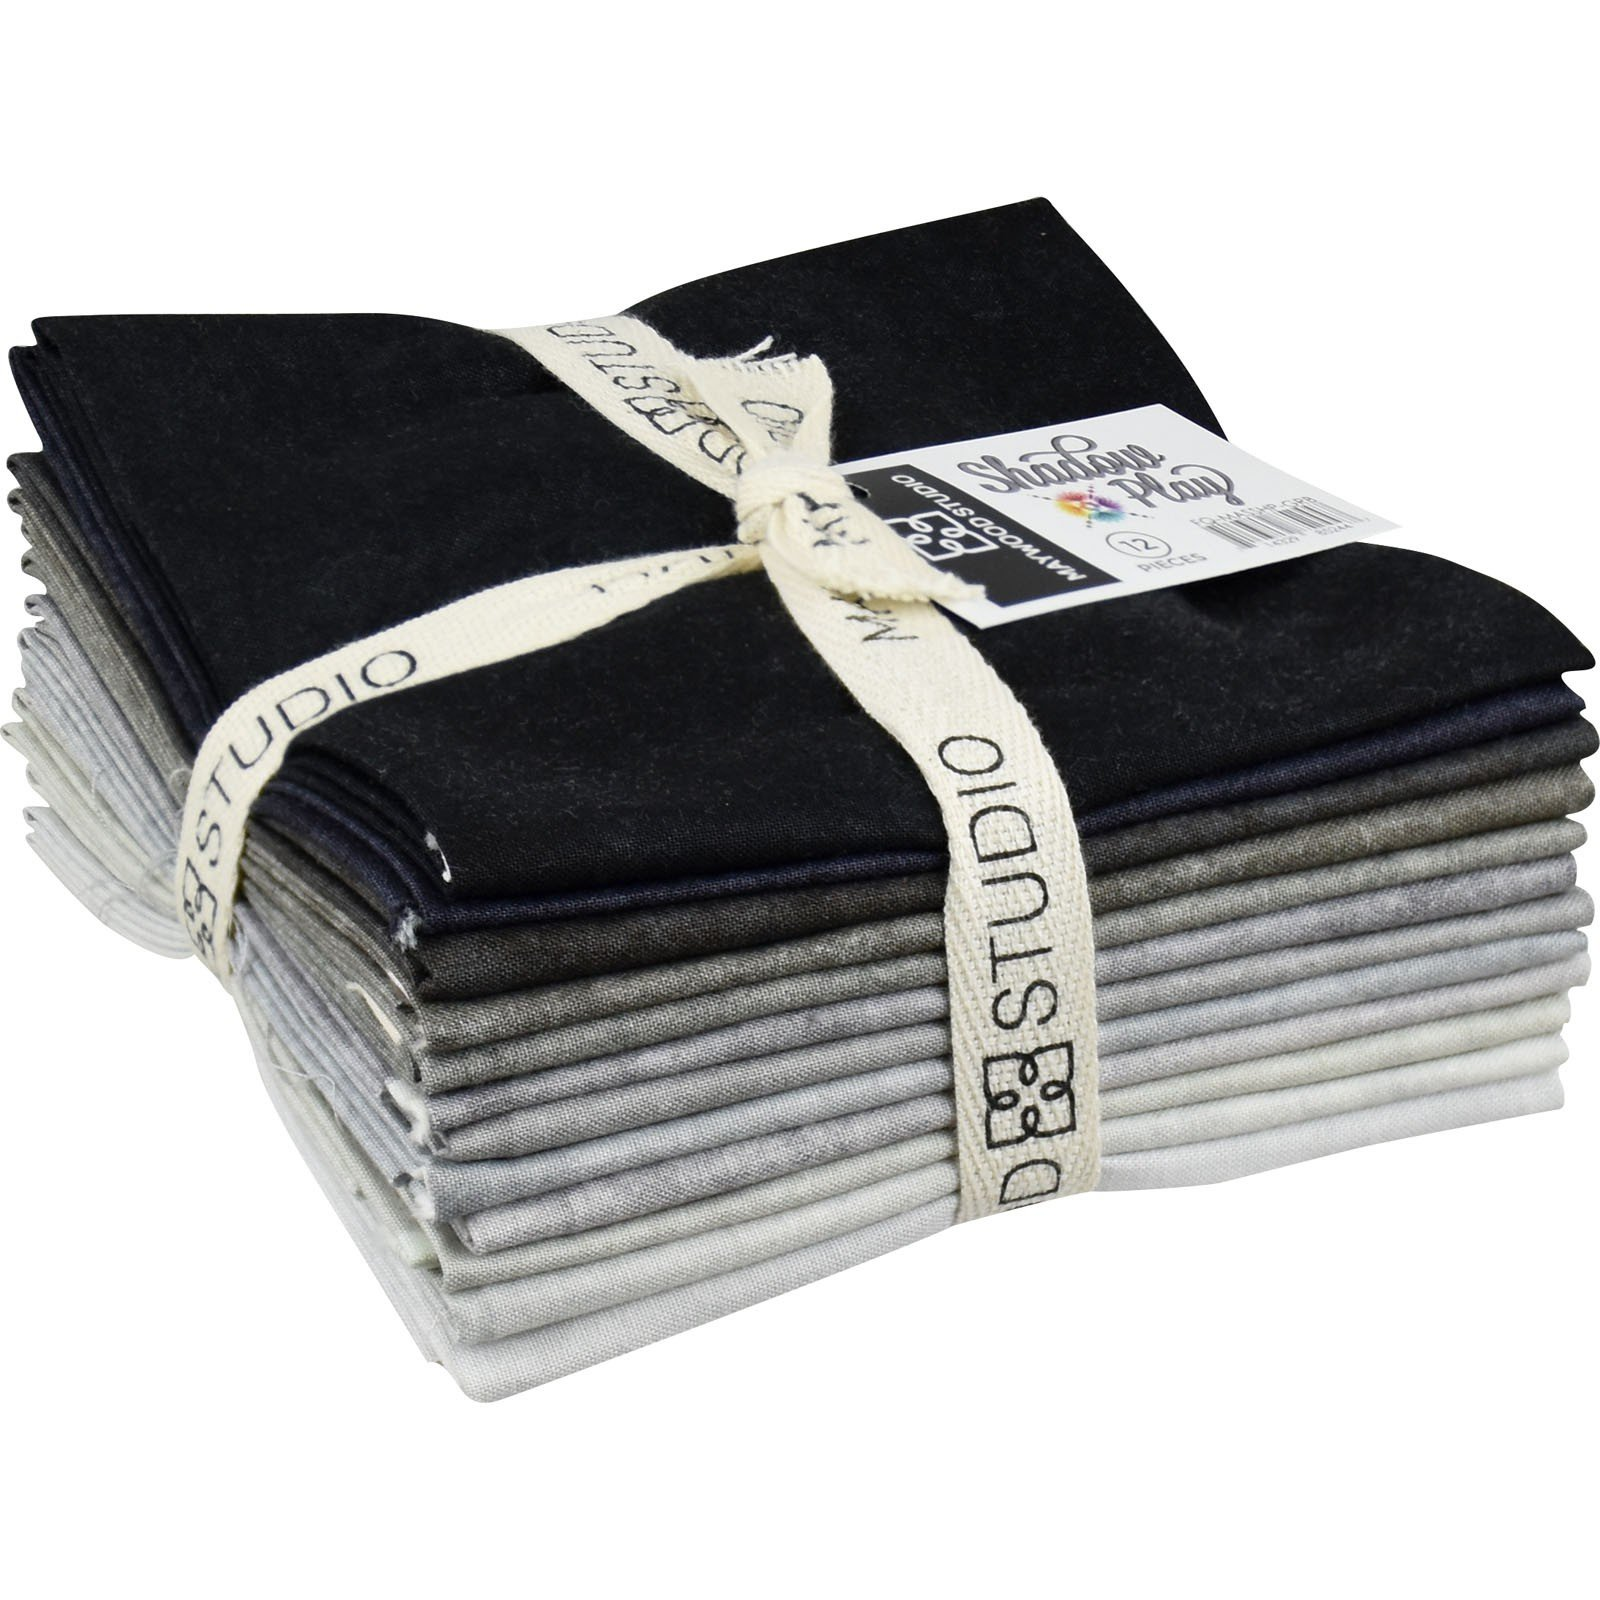 Shadow Play Fat Quarter Bundle Greys & Blacks (14) Pieces